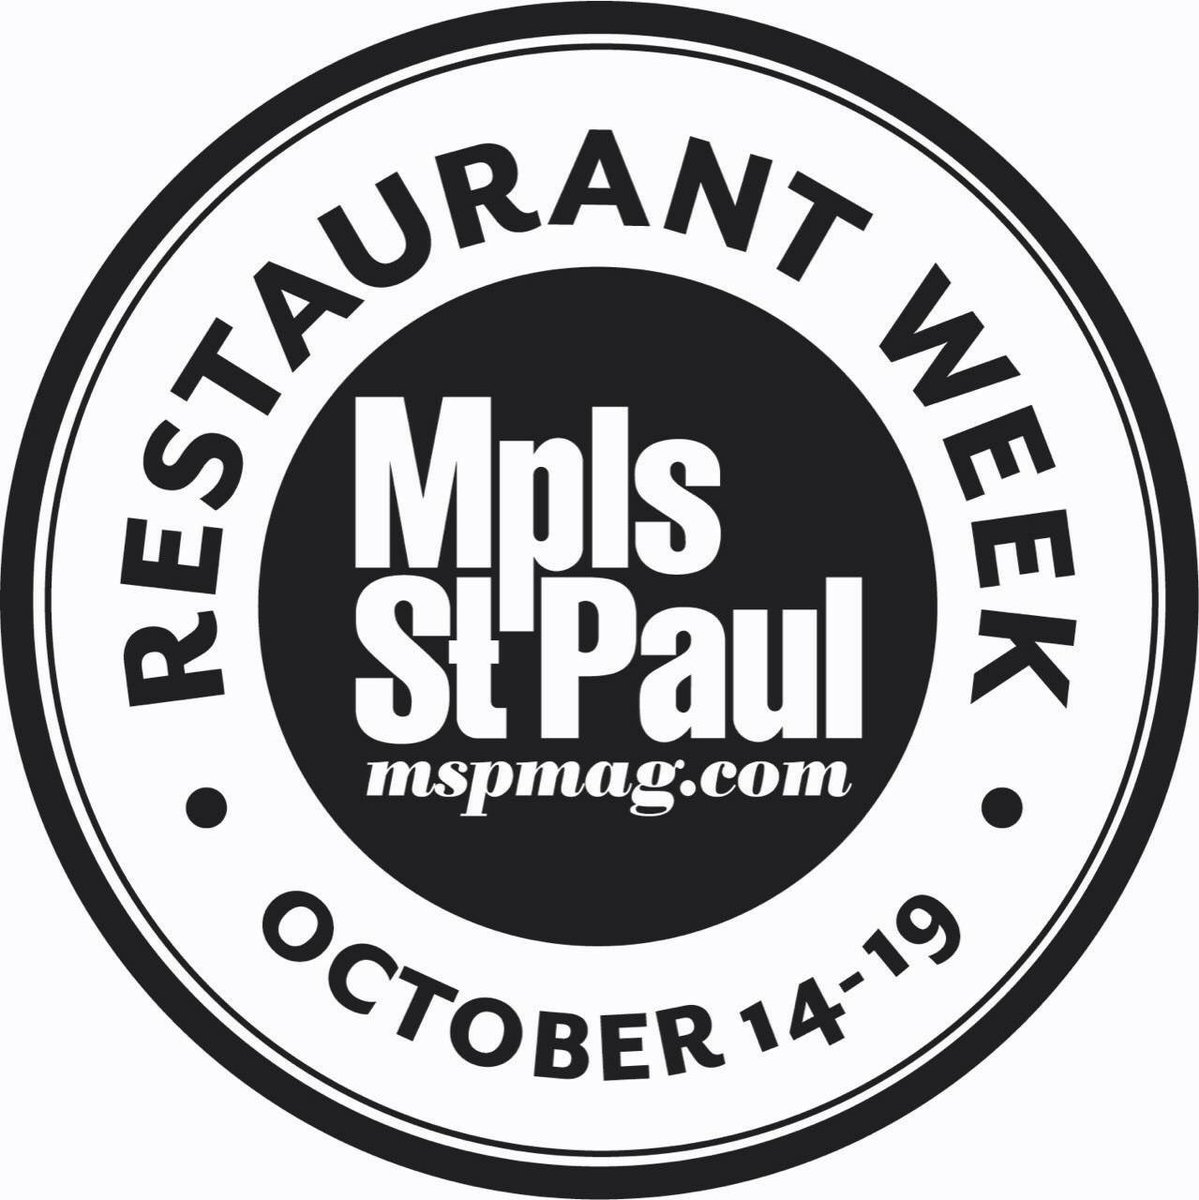 Mpls. St. Paul Magazine Restaurant Week Starts This Sunday, October 14th!!  Call 612.238.7770 Or Visit Http://7mpls.com To Make Your ...